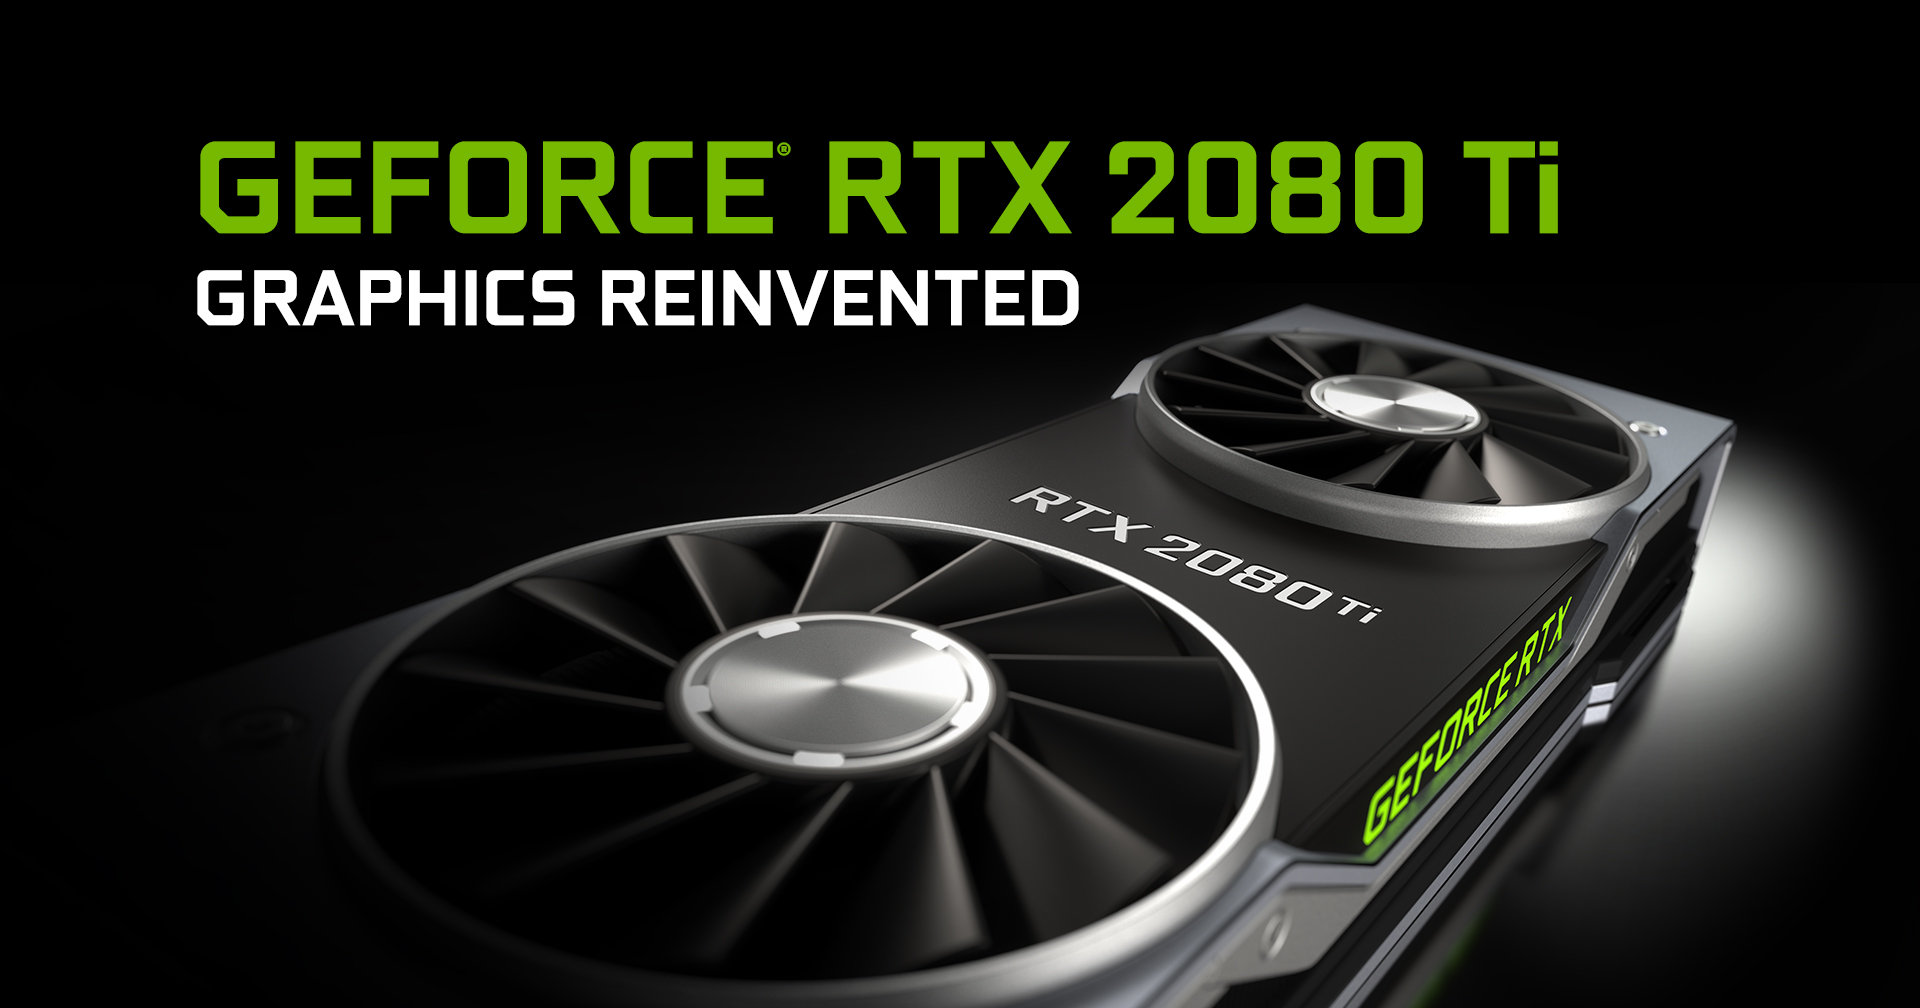 Now supports ray tracing: The NVIDIA-GeForce RTX 2080 Ti